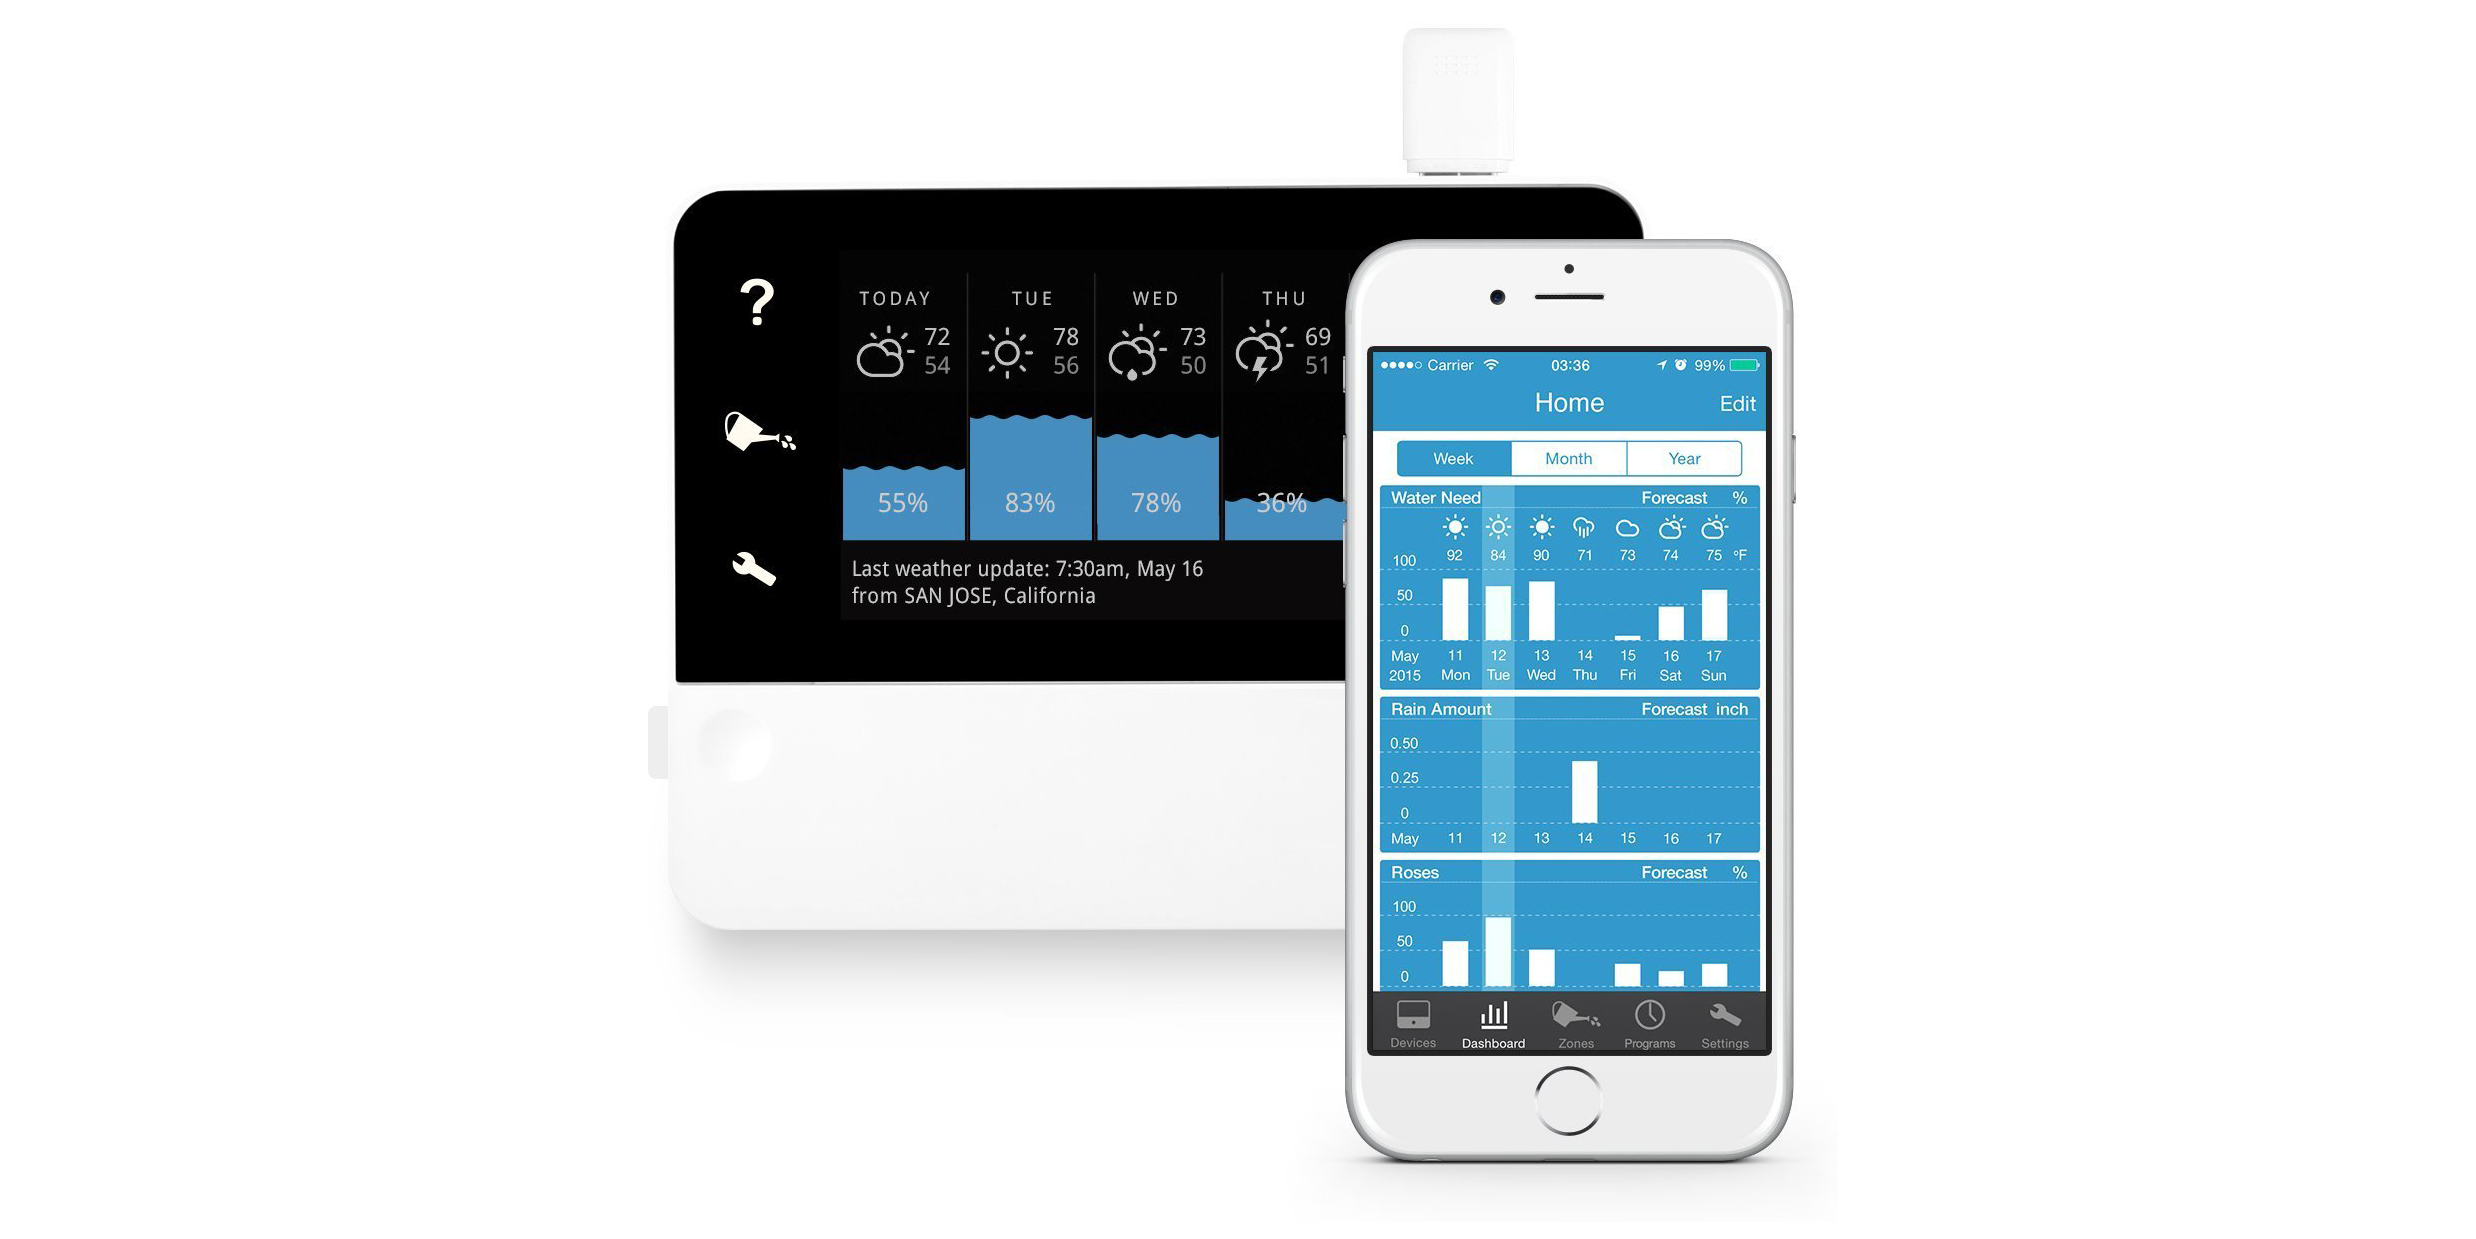 RainMachine's Touch Wi-Fi Irrigation Controller is perfect for summer at $179 (Amazon low)